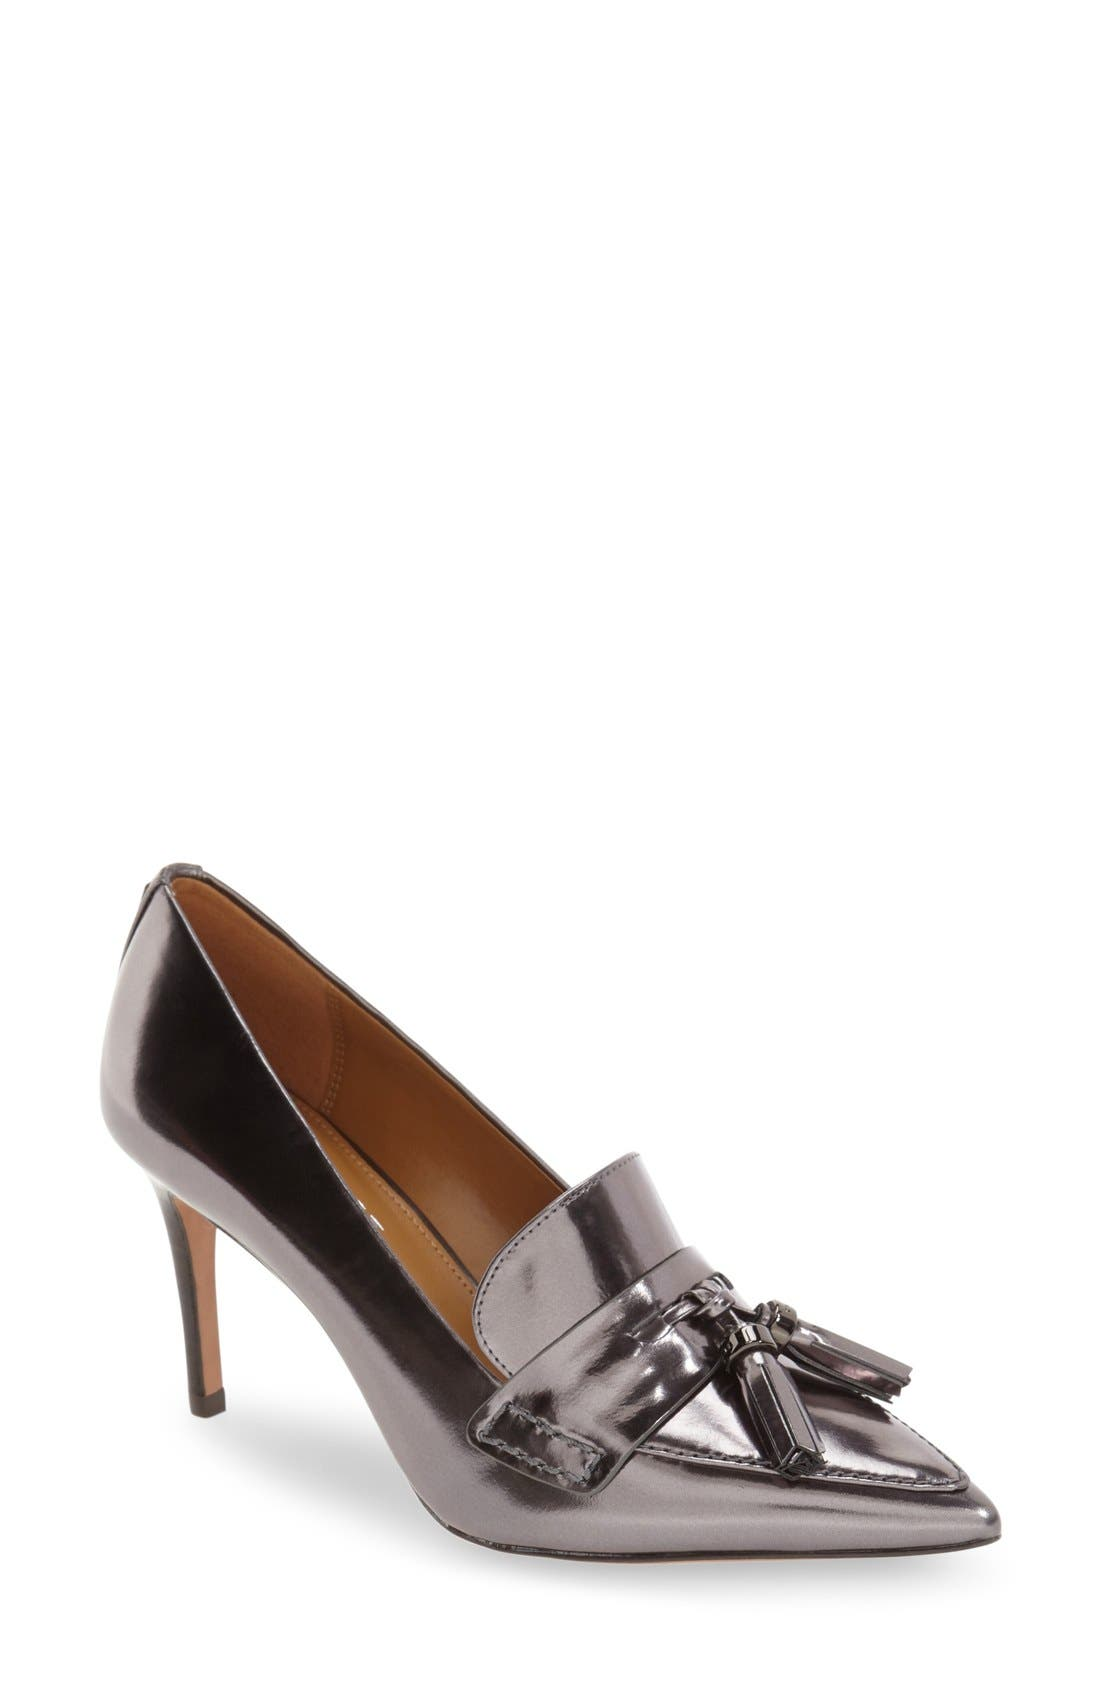 Alternate Image 1 Selected - COACH 'Spencer' Pump (Women)